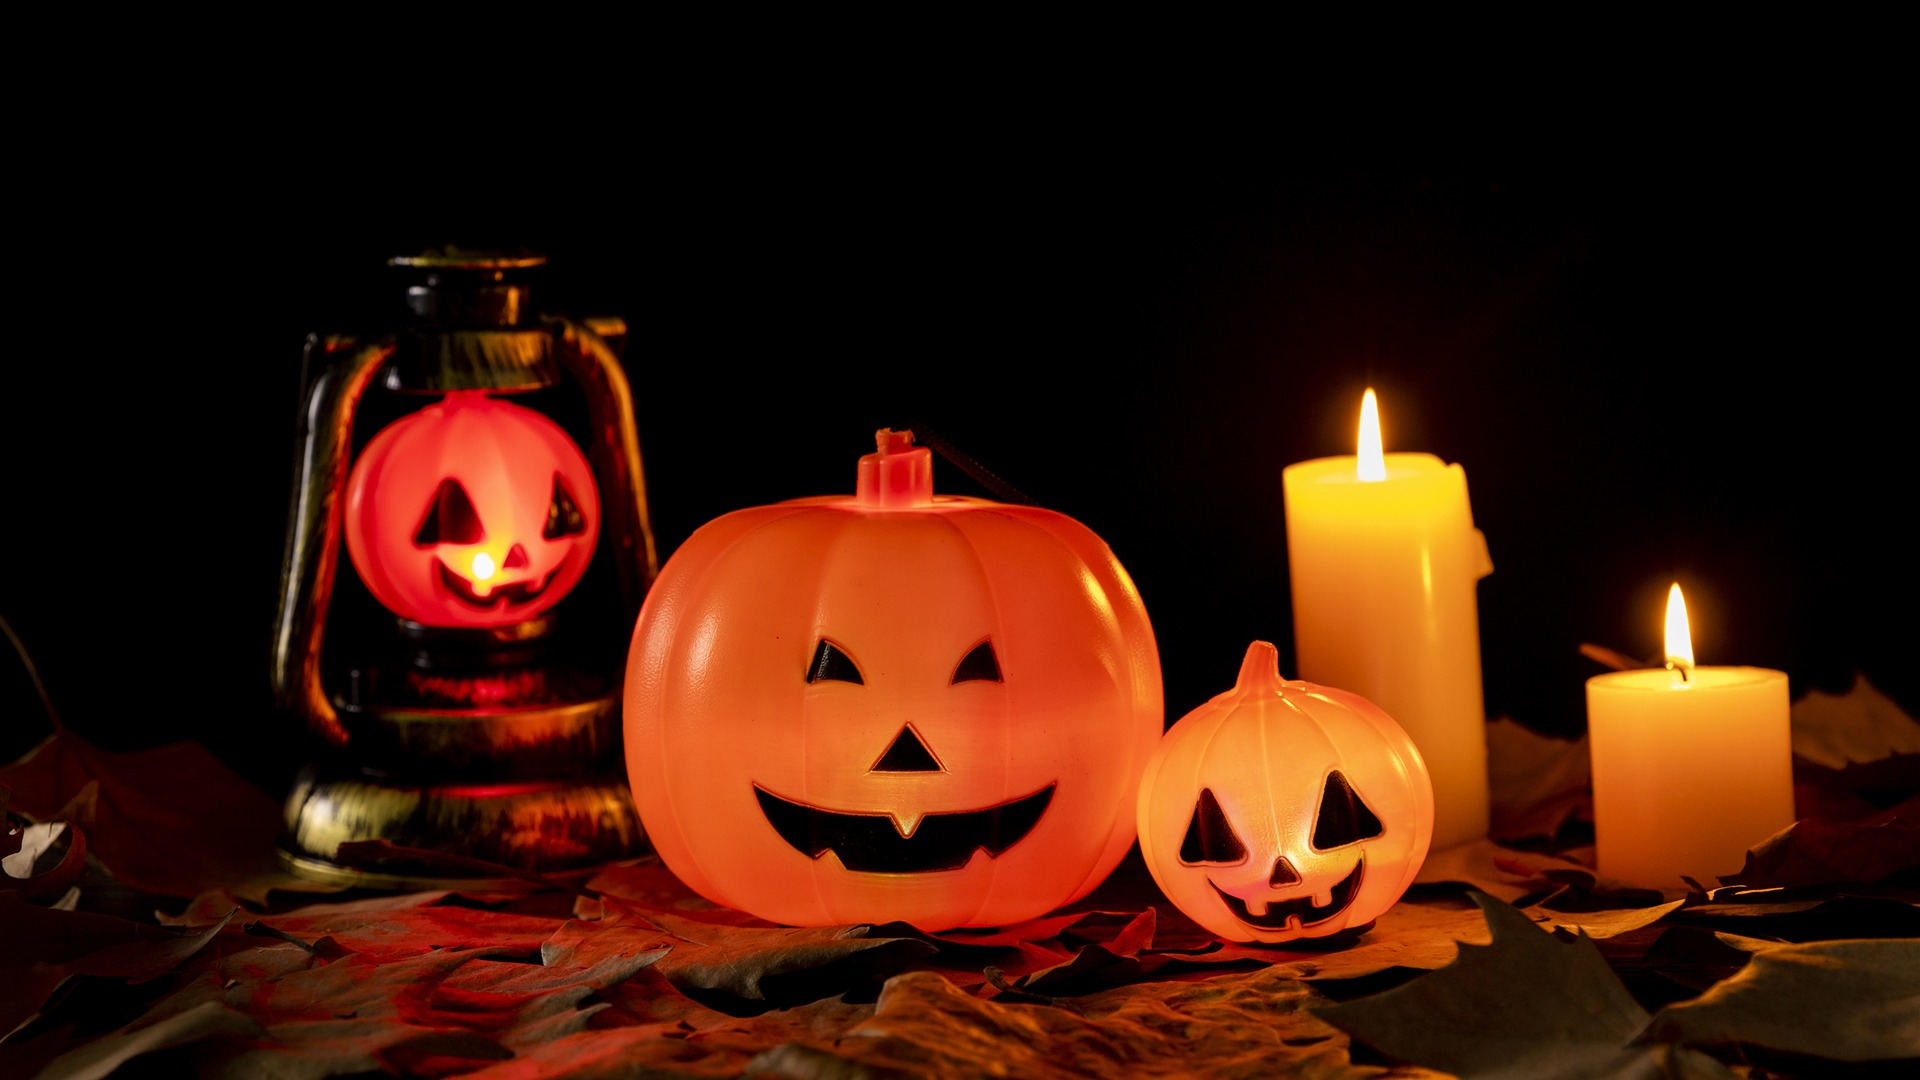 Halloween Pumpkin Lantern Photo Background Size 1920x1080